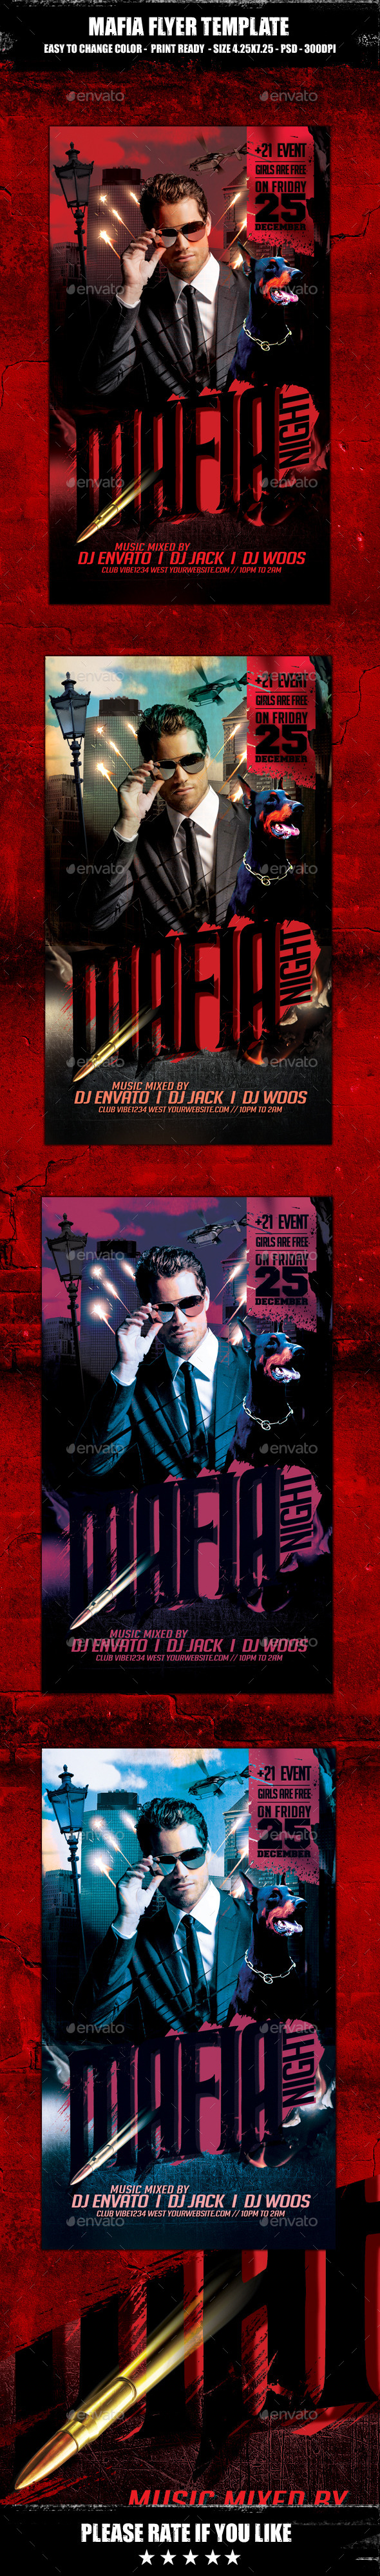 Mafia Flyer Template - Clubs & Parties Events